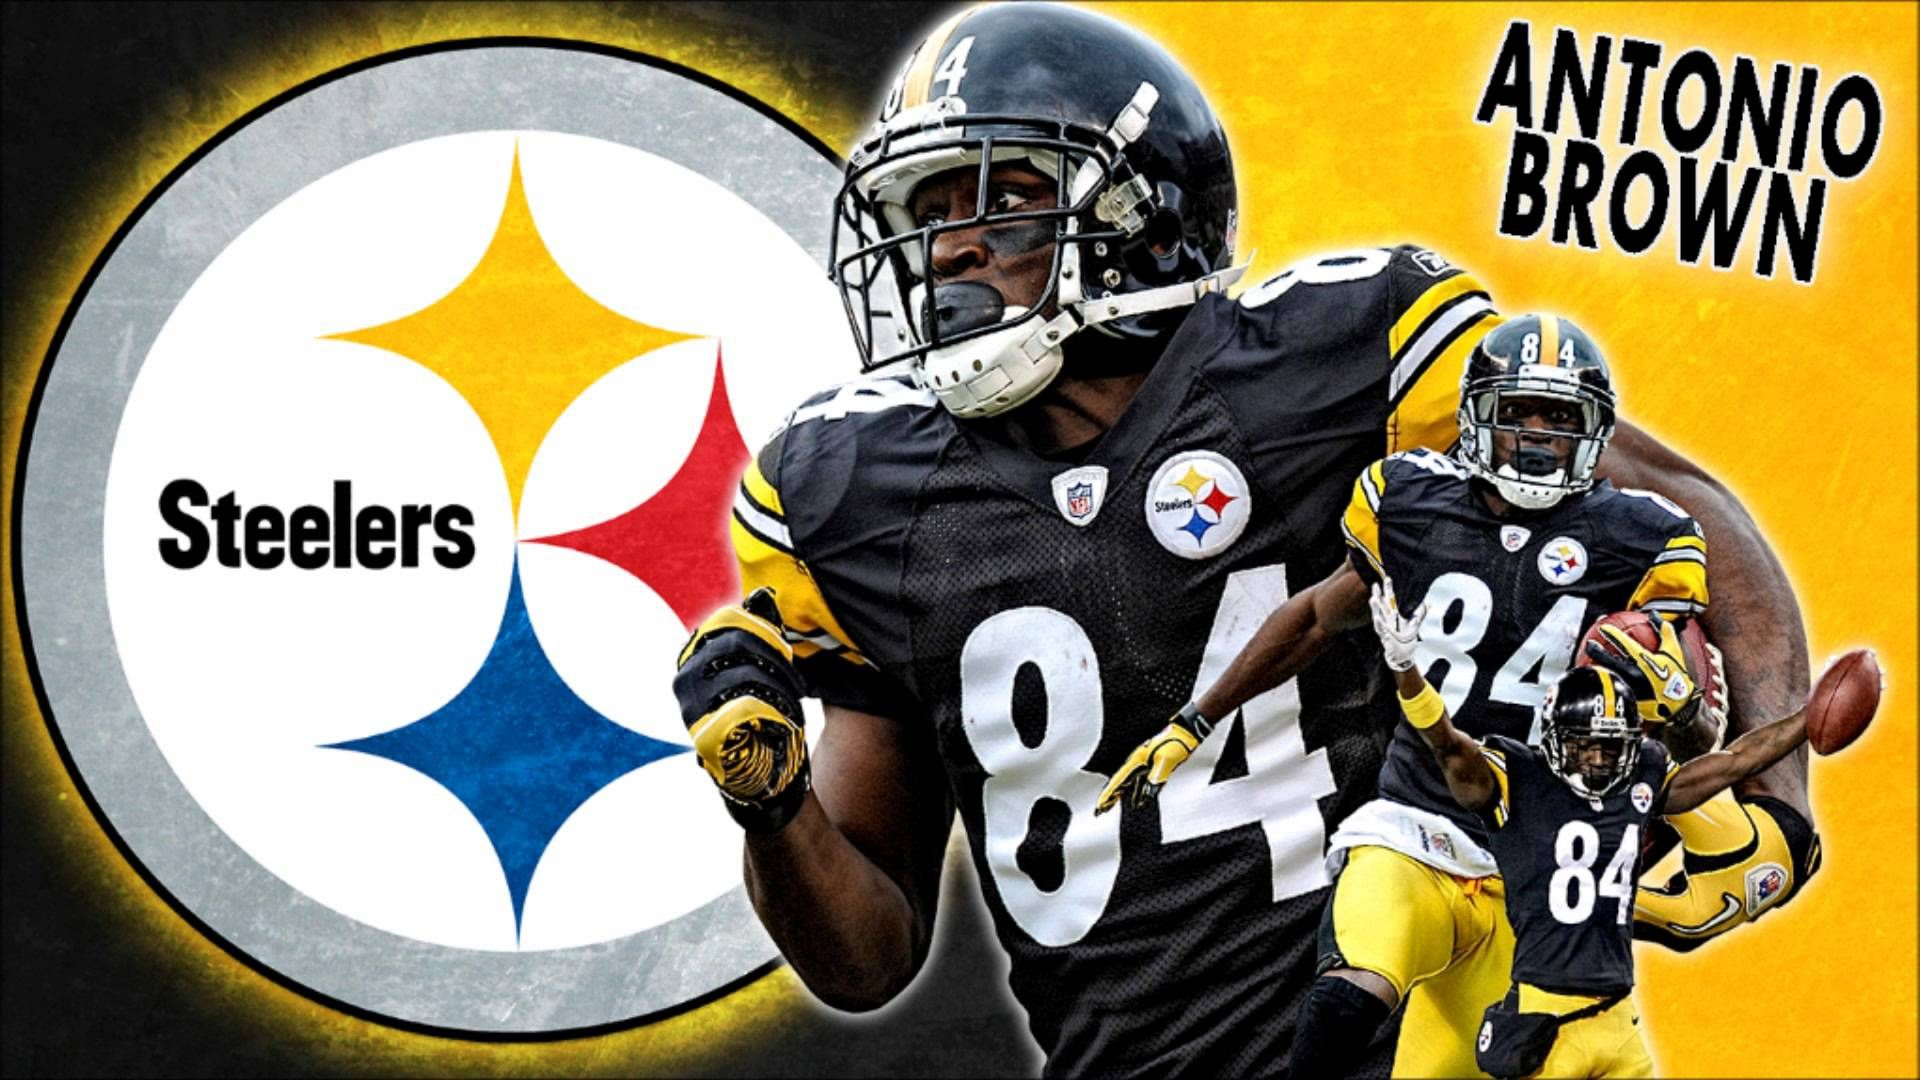 Pin By Andrew Bartlett On Steelers Antonio Brown Steelers Pittsburgh Steelers Wallpaper Antonio Brown